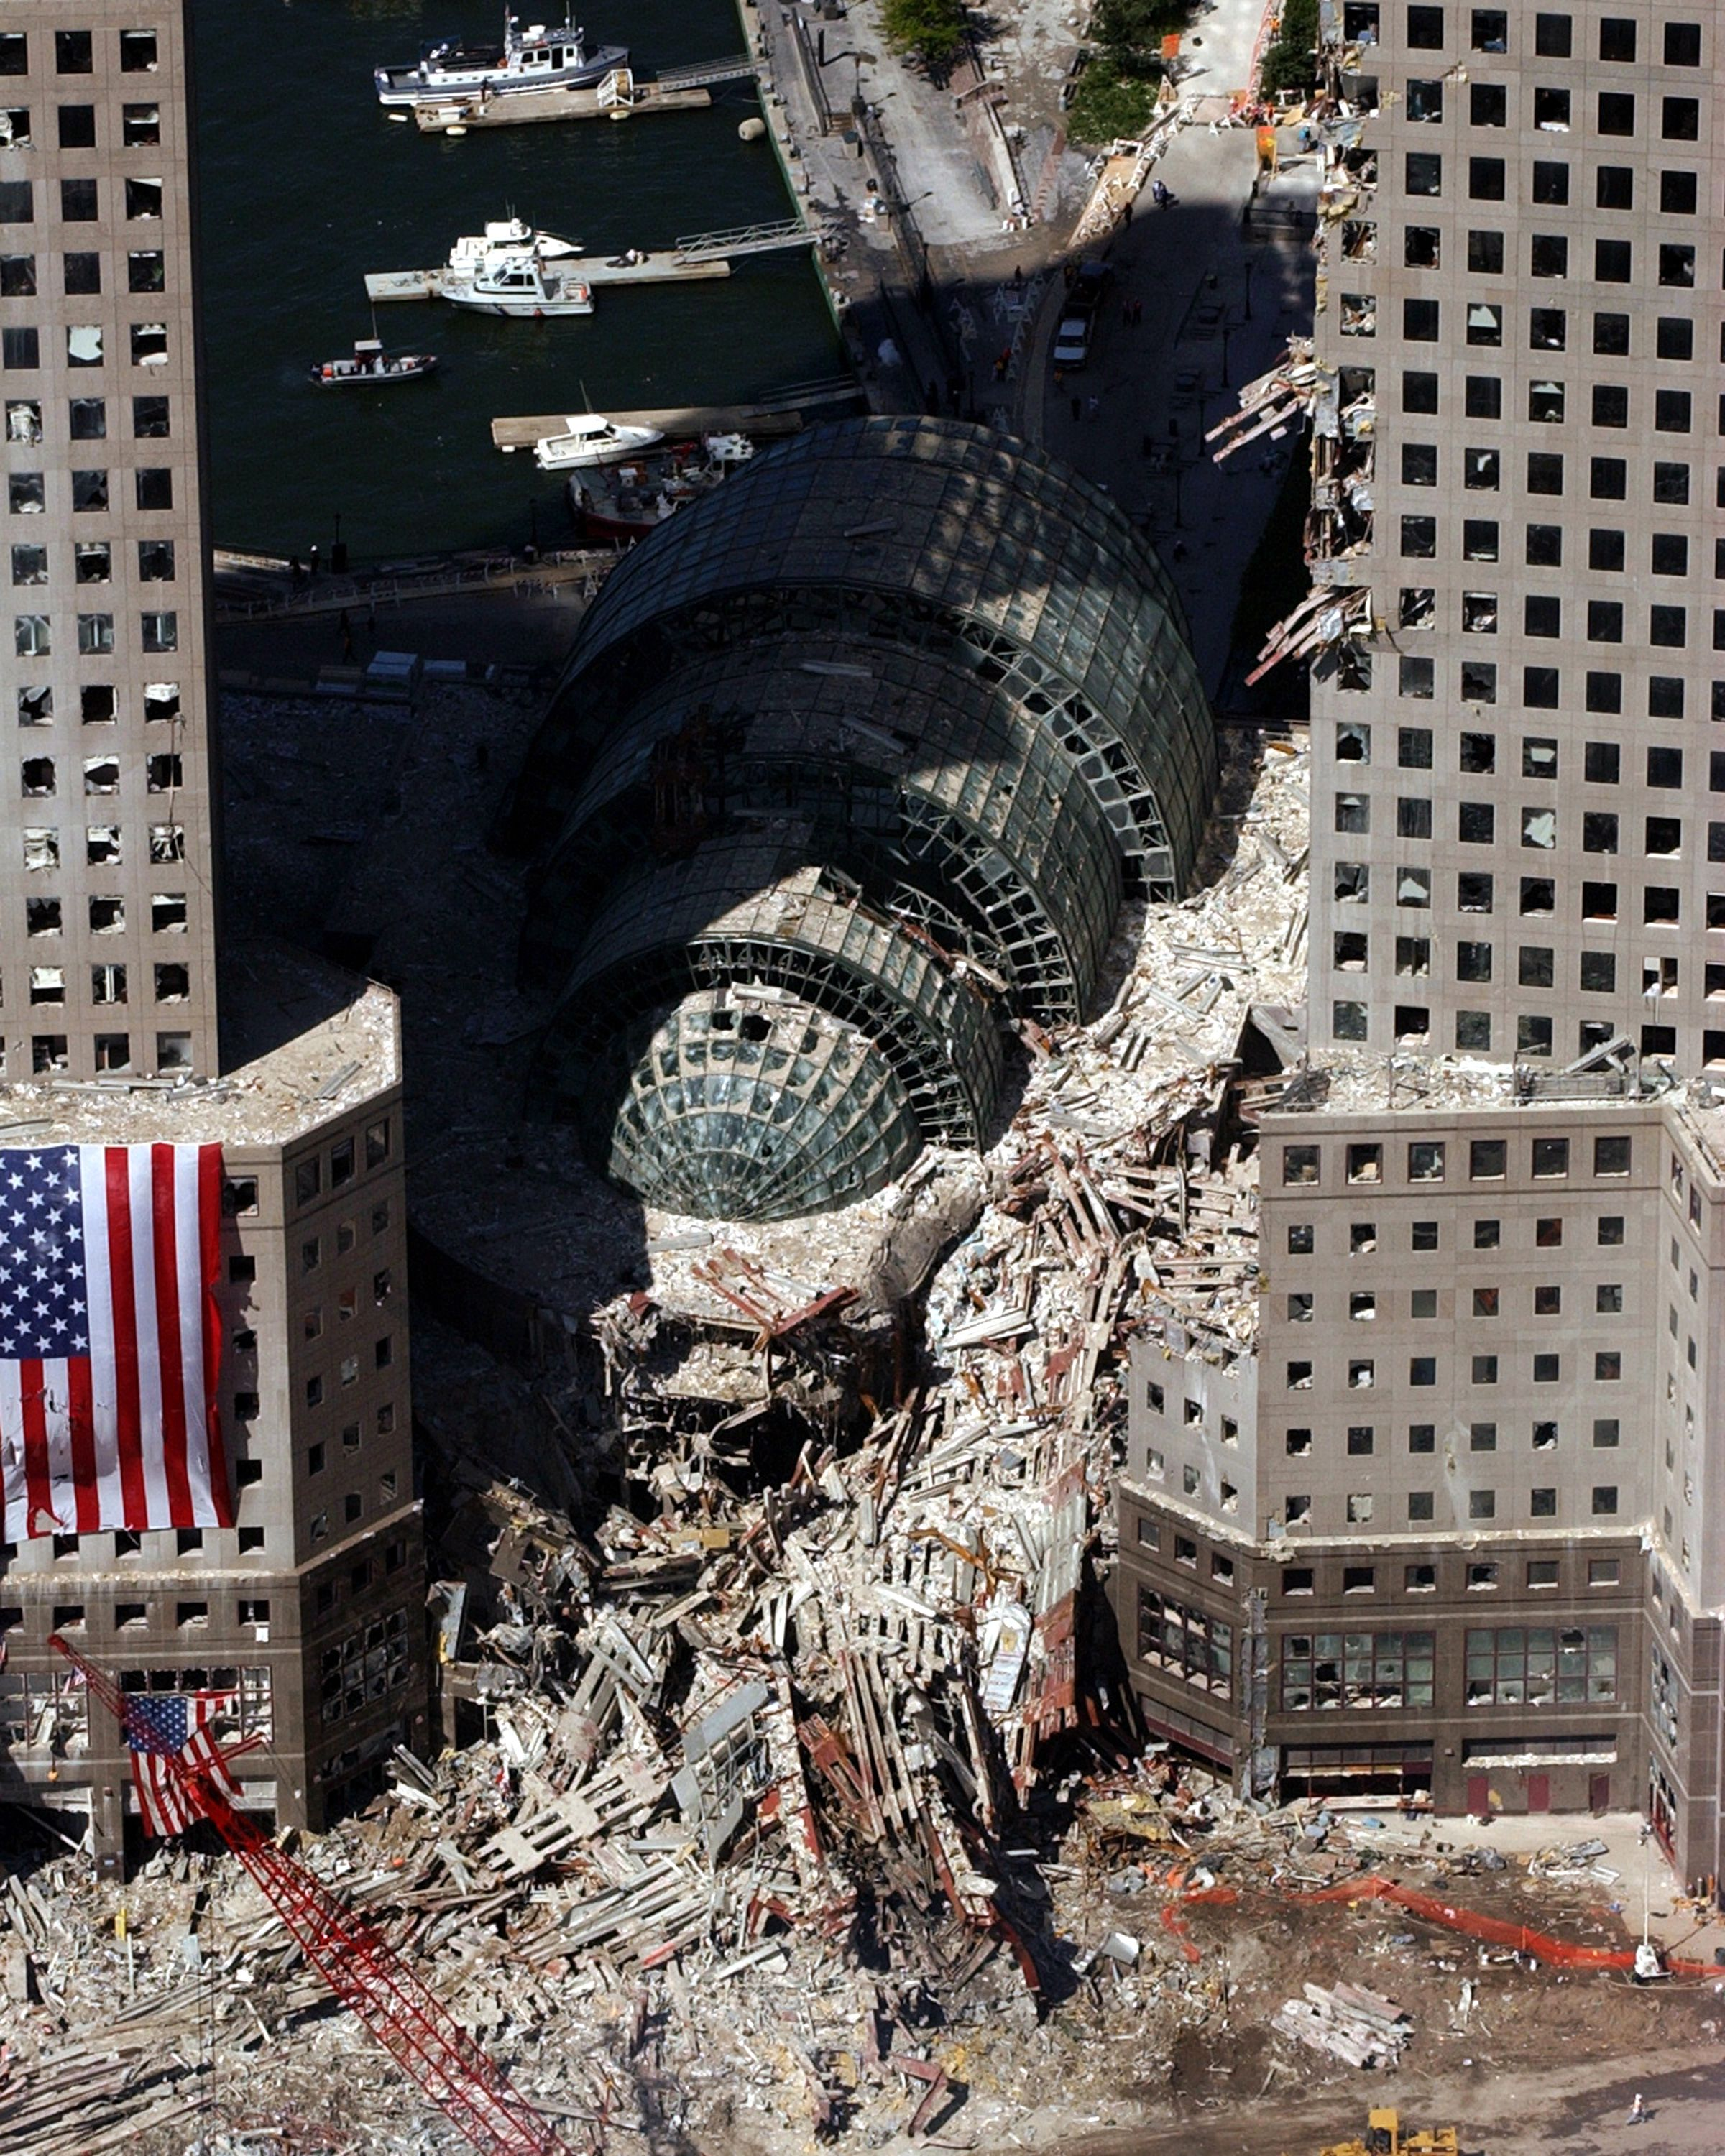 Superb Ground Zero. How Come Iu0027ve Never Seen This Photo? In Any Case It Still  Makes Me Sad.